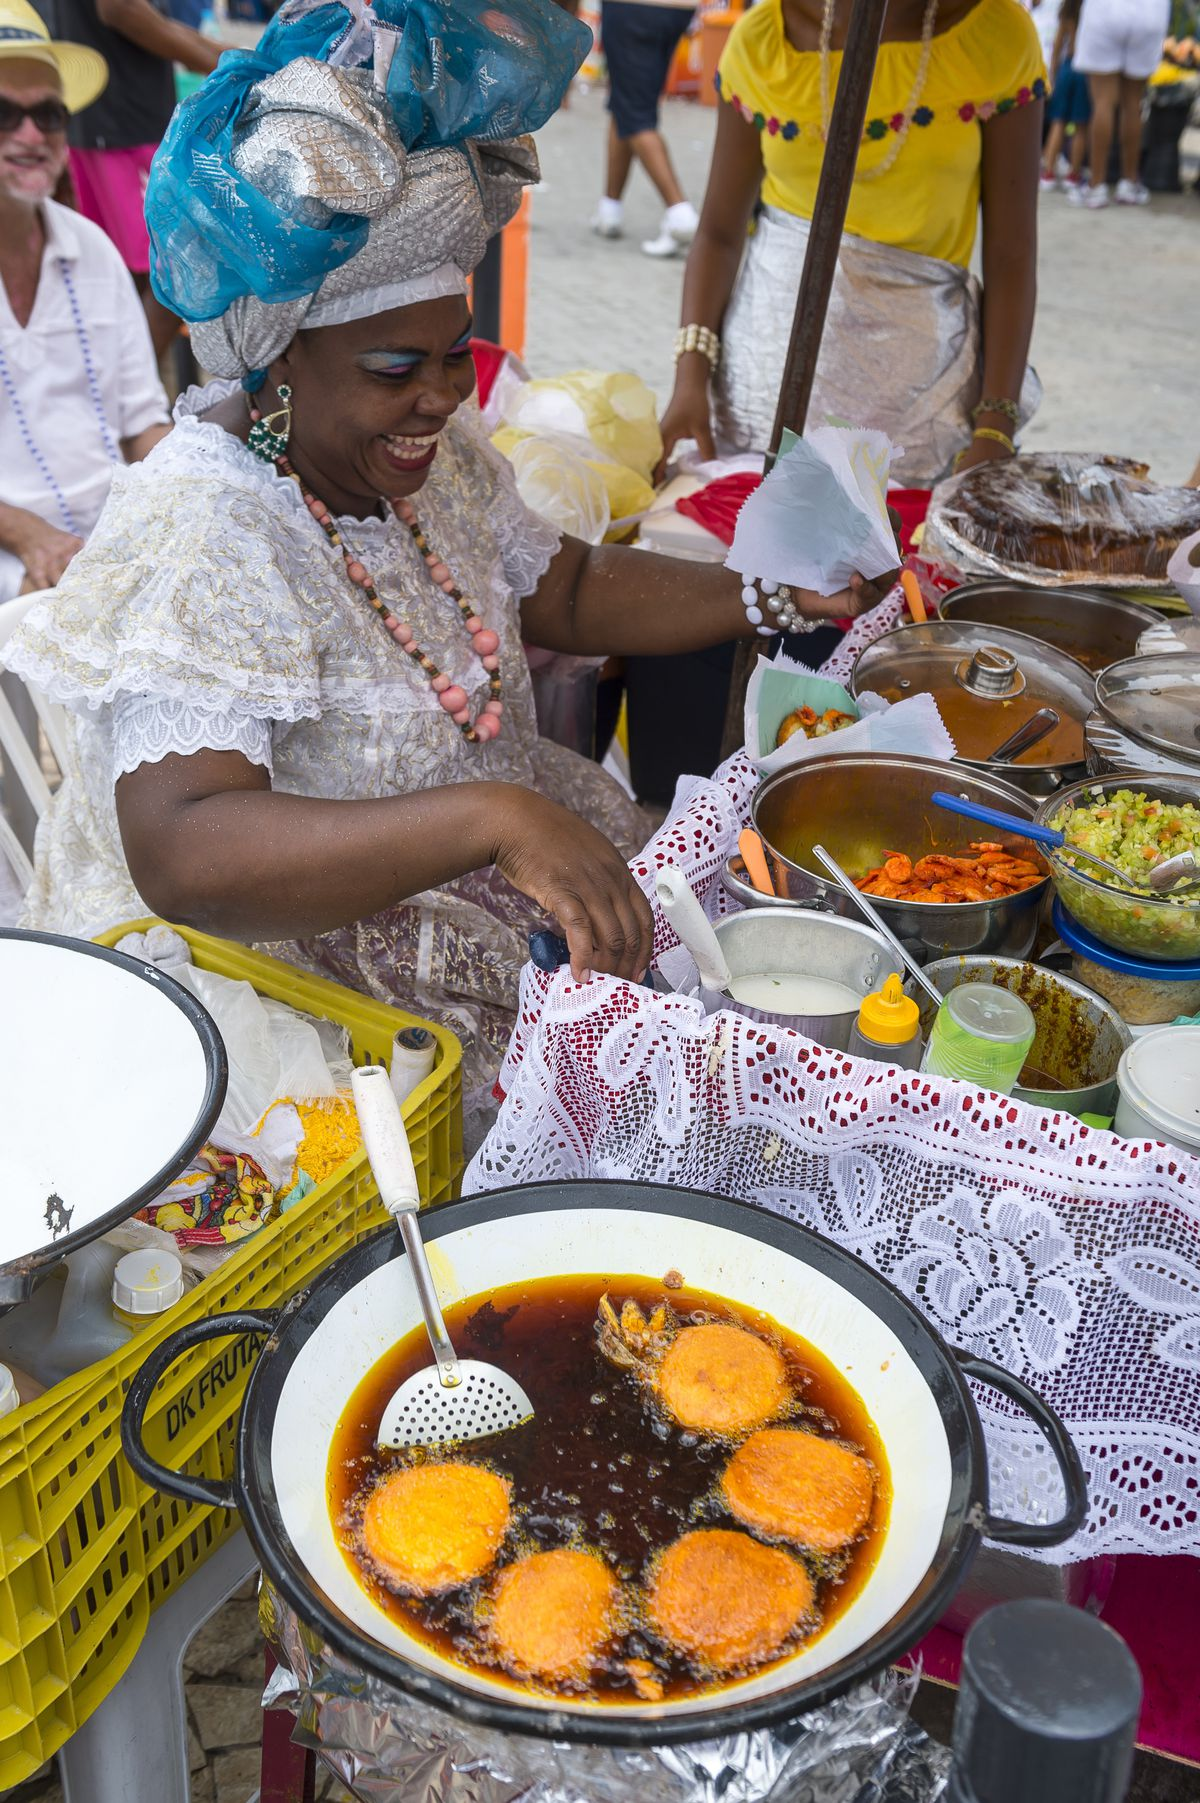 Brazilian Baiana woman assembles a plate of traditional acaraje fritters from a stall on the street.